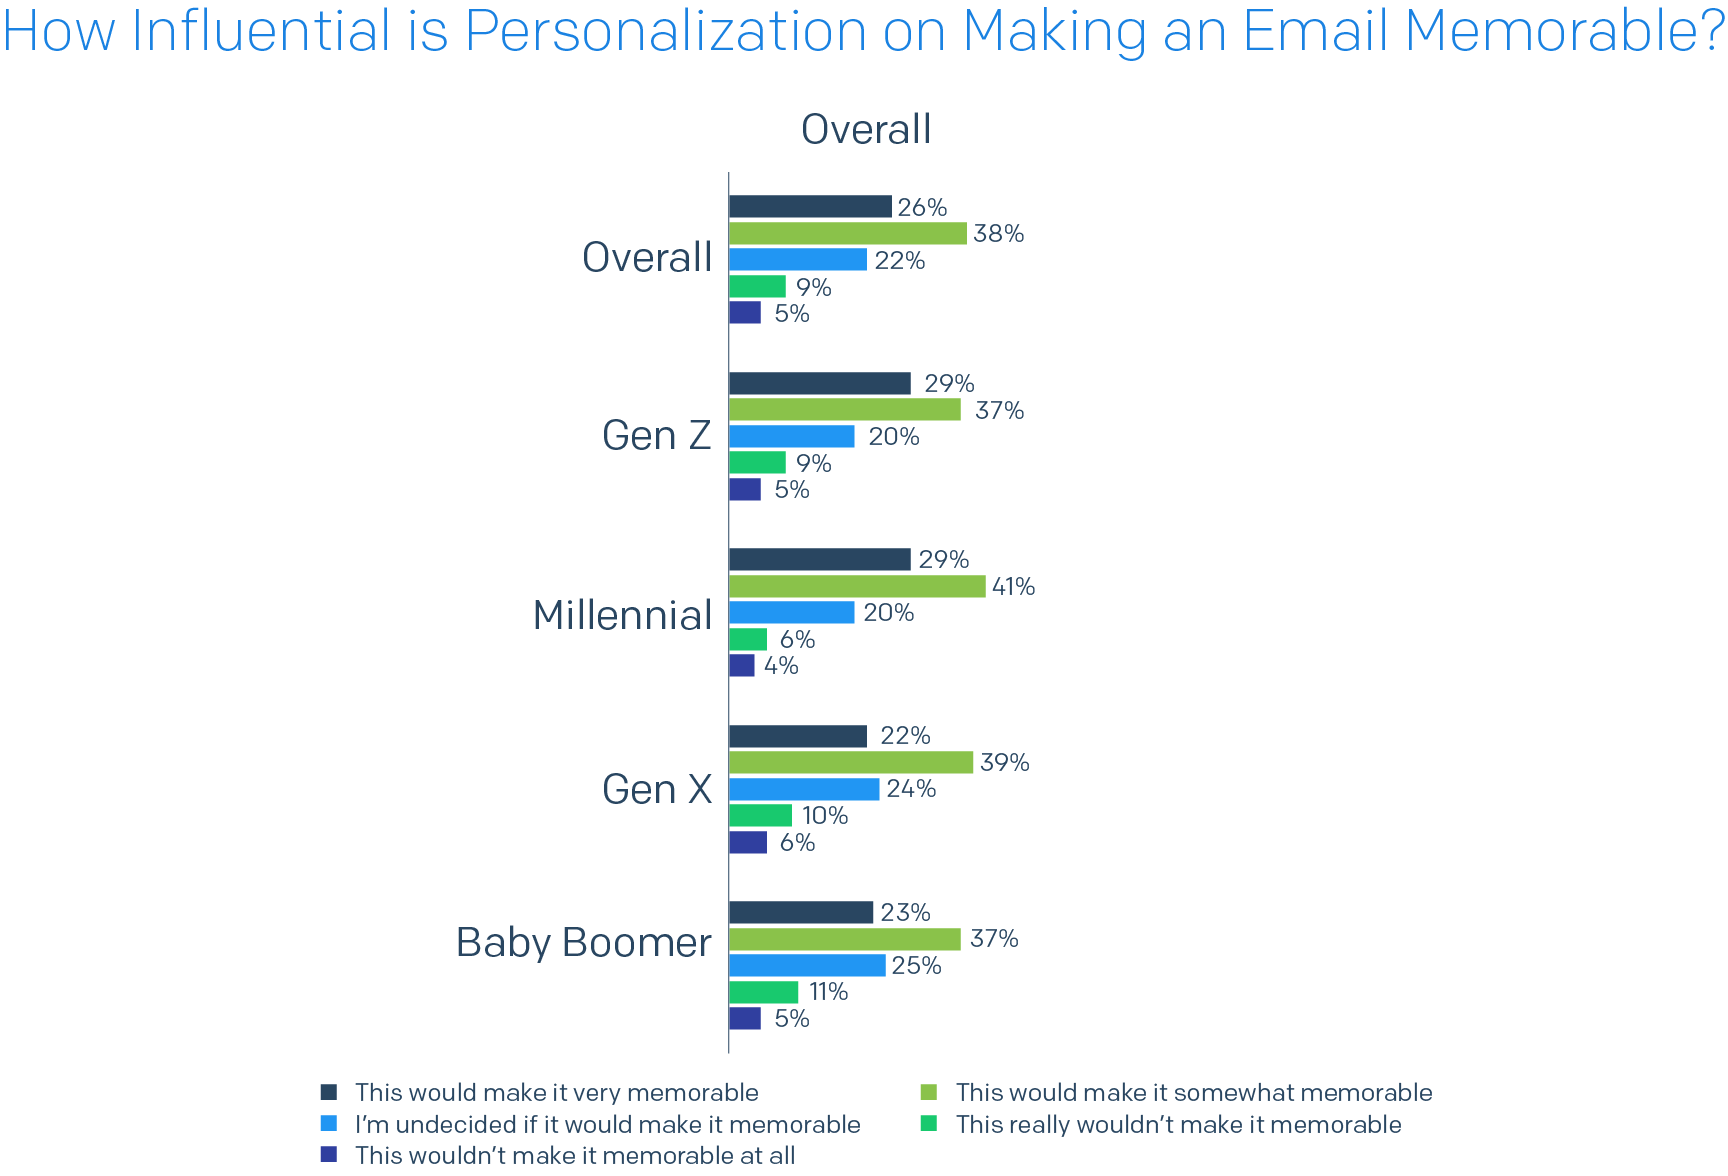 Bar chart of How Influential is Personalization on Making an Email Memorable?